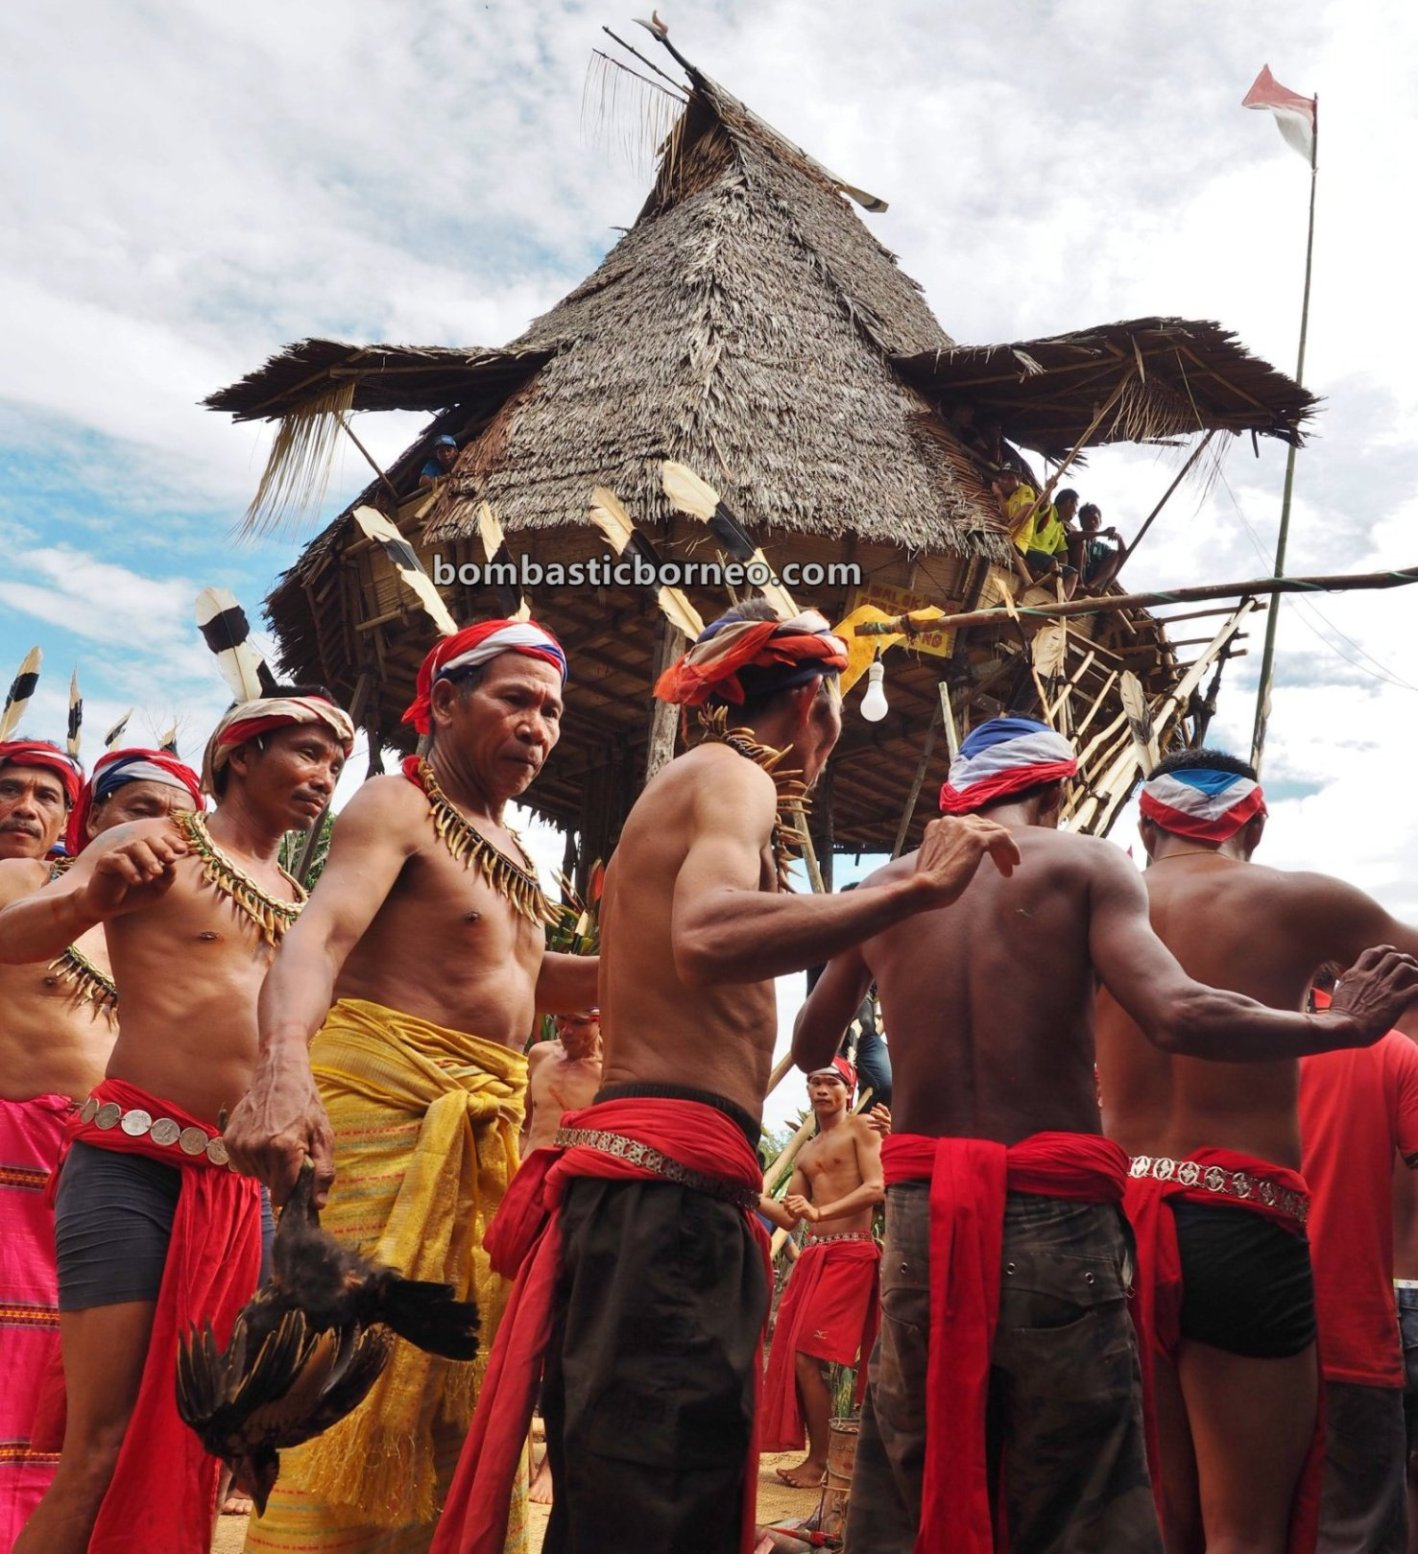 Nyobeng Rambai, Gawai Harvest Festival, authentic, backpackers, culture, Indonesia, West Kalimantan, Bengkayang, Desa Sahan, Dayak Bidayuh, indigenous, Rumah Adat Baluk, Obyek wisata, Tourism, travel guide, Borneo